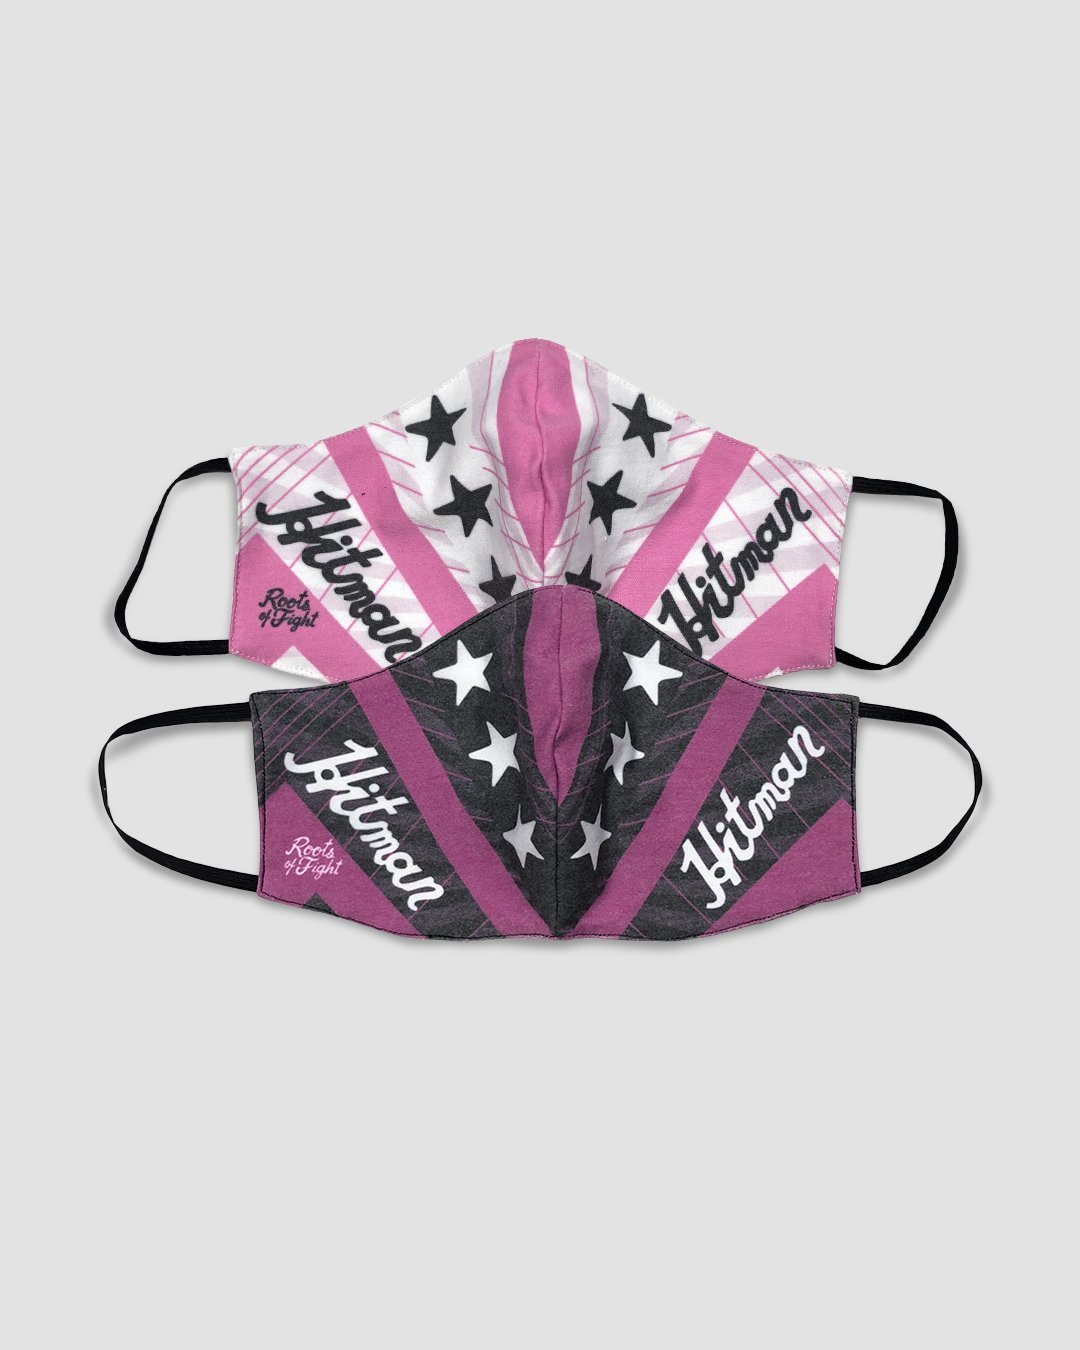 Bret Hart Face Mask Combo - Roots of Inc dba Roots of Fight